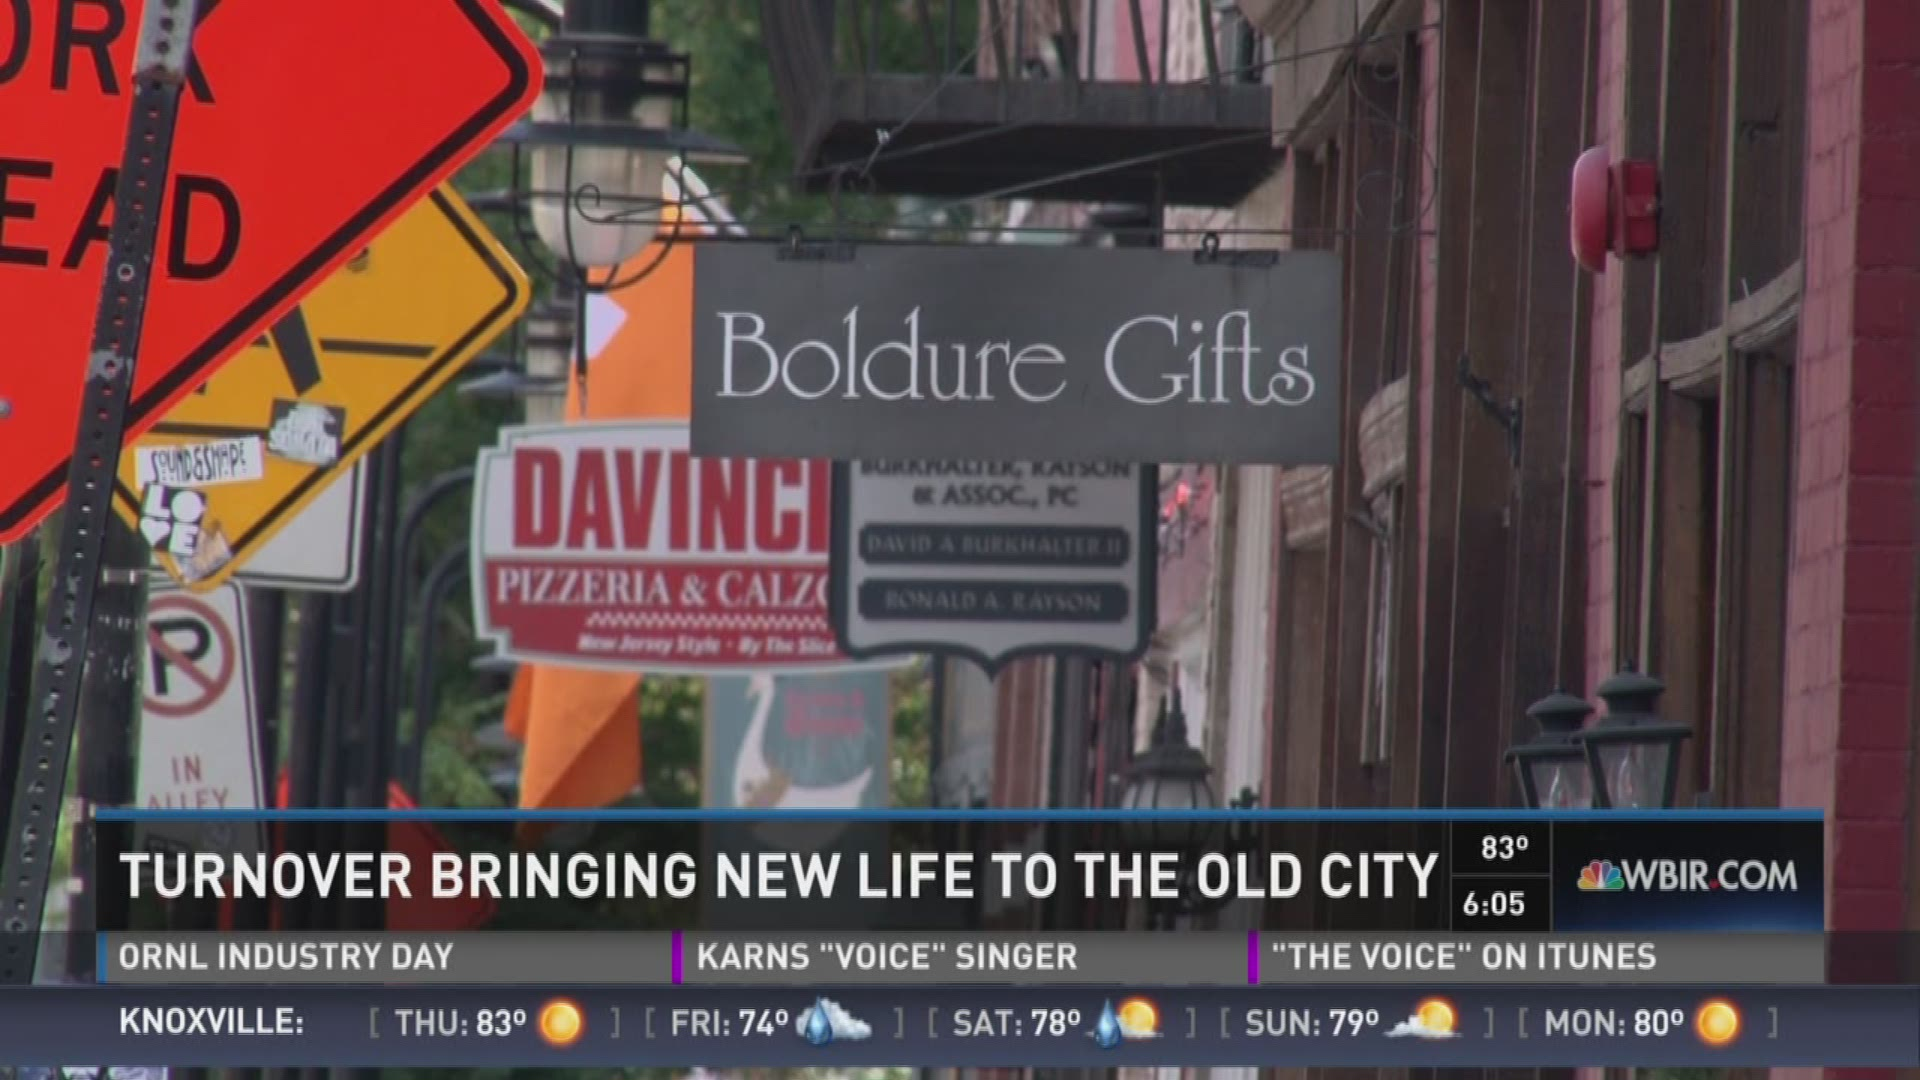 Turnover bringing new life to Old City